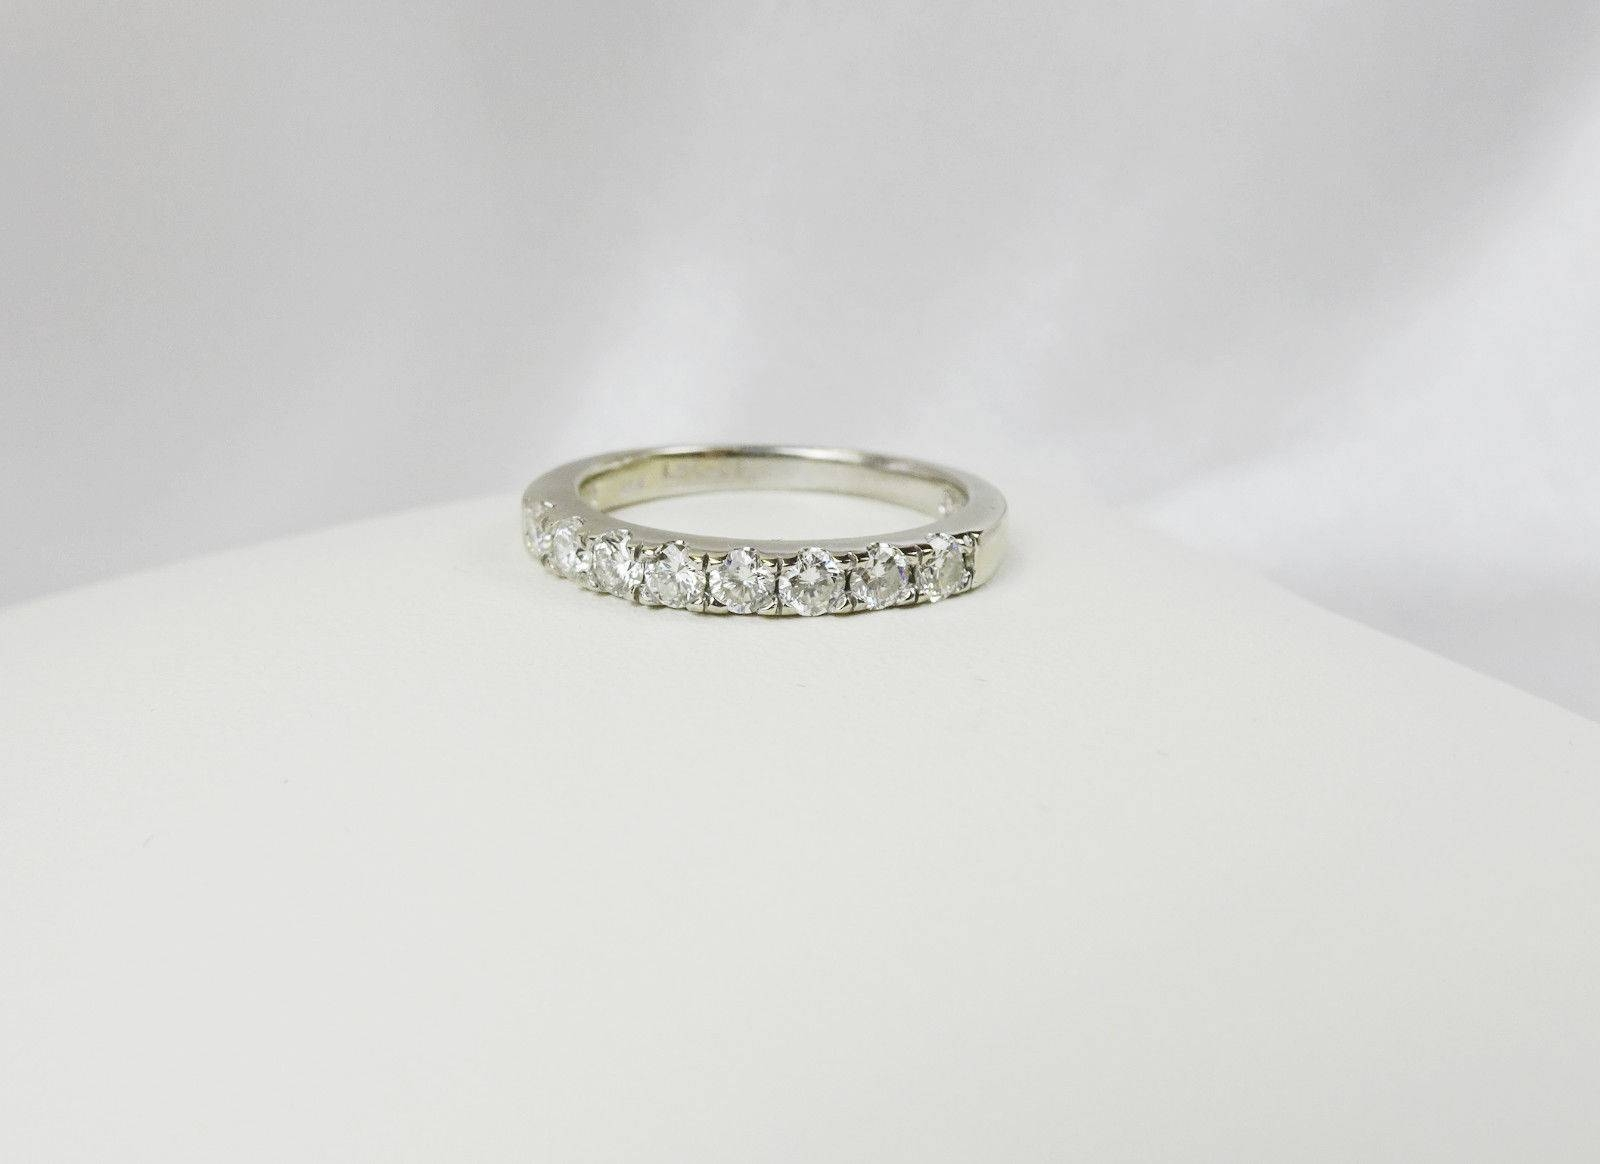 50Ctw The Leo Diamond Wedding Band 14K White Gold, From Kay With Leo Diamond Wedding Bands (Gallery 14 of 15)